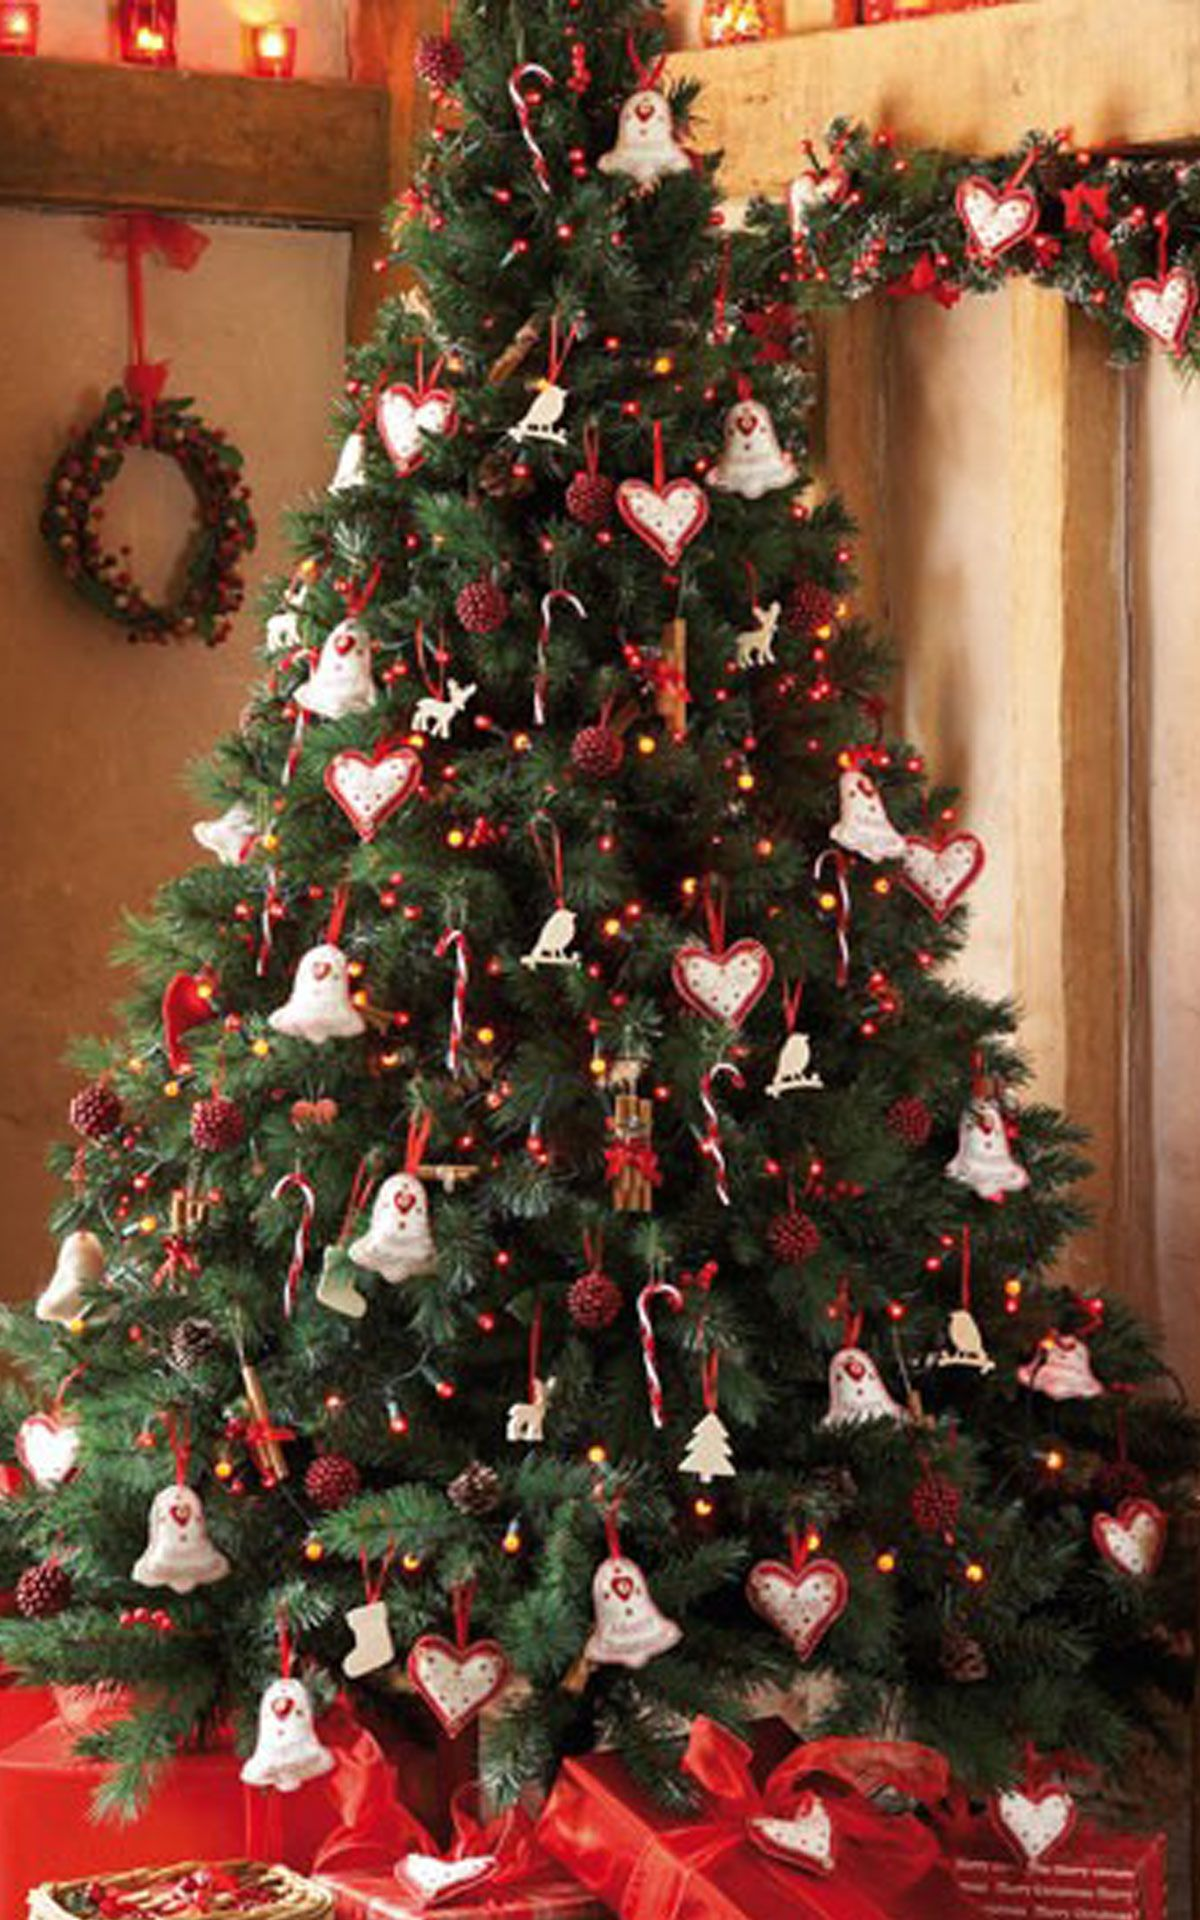 Xmas Tree Decorating Ideas with nice bell and a sign of love ornament decor  for little